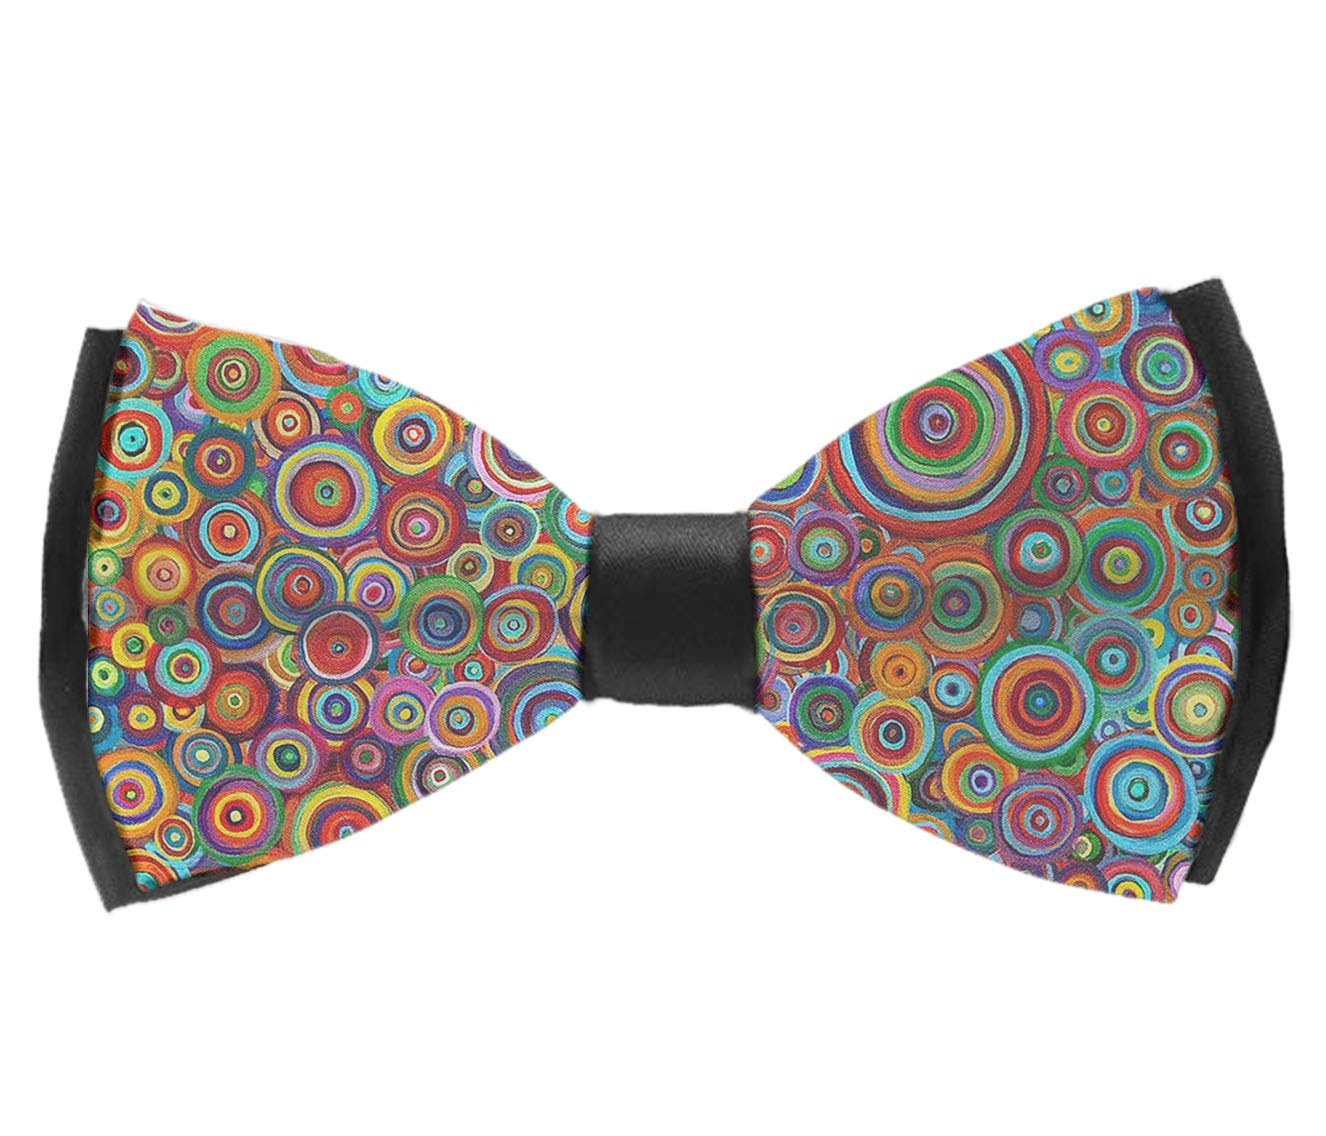 Psychedelic Trippy Art Candle Adjustable Party Bow Tie INWANZI Elegant Pre-Tied Bowtie for Men /& Boys